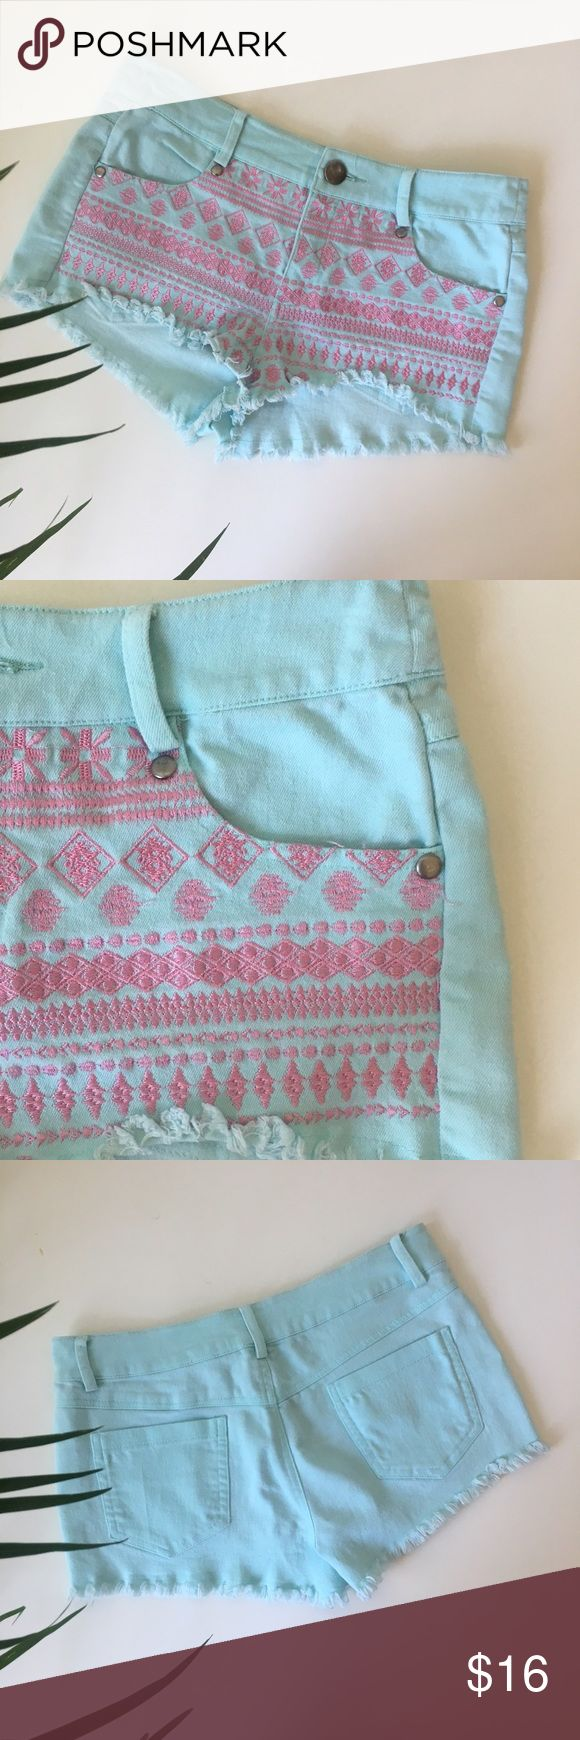 "Mustard seed shorts Mustard seed Cute mint green shorts with pink embroidery all over the front. Waist:14"" raise:8,5"" height 7,5 please feel free to ask me any questions! I'm always talking reasonable offers!!! (all measurements are approximate) Mustard Seed Shorts Jean Shorts"